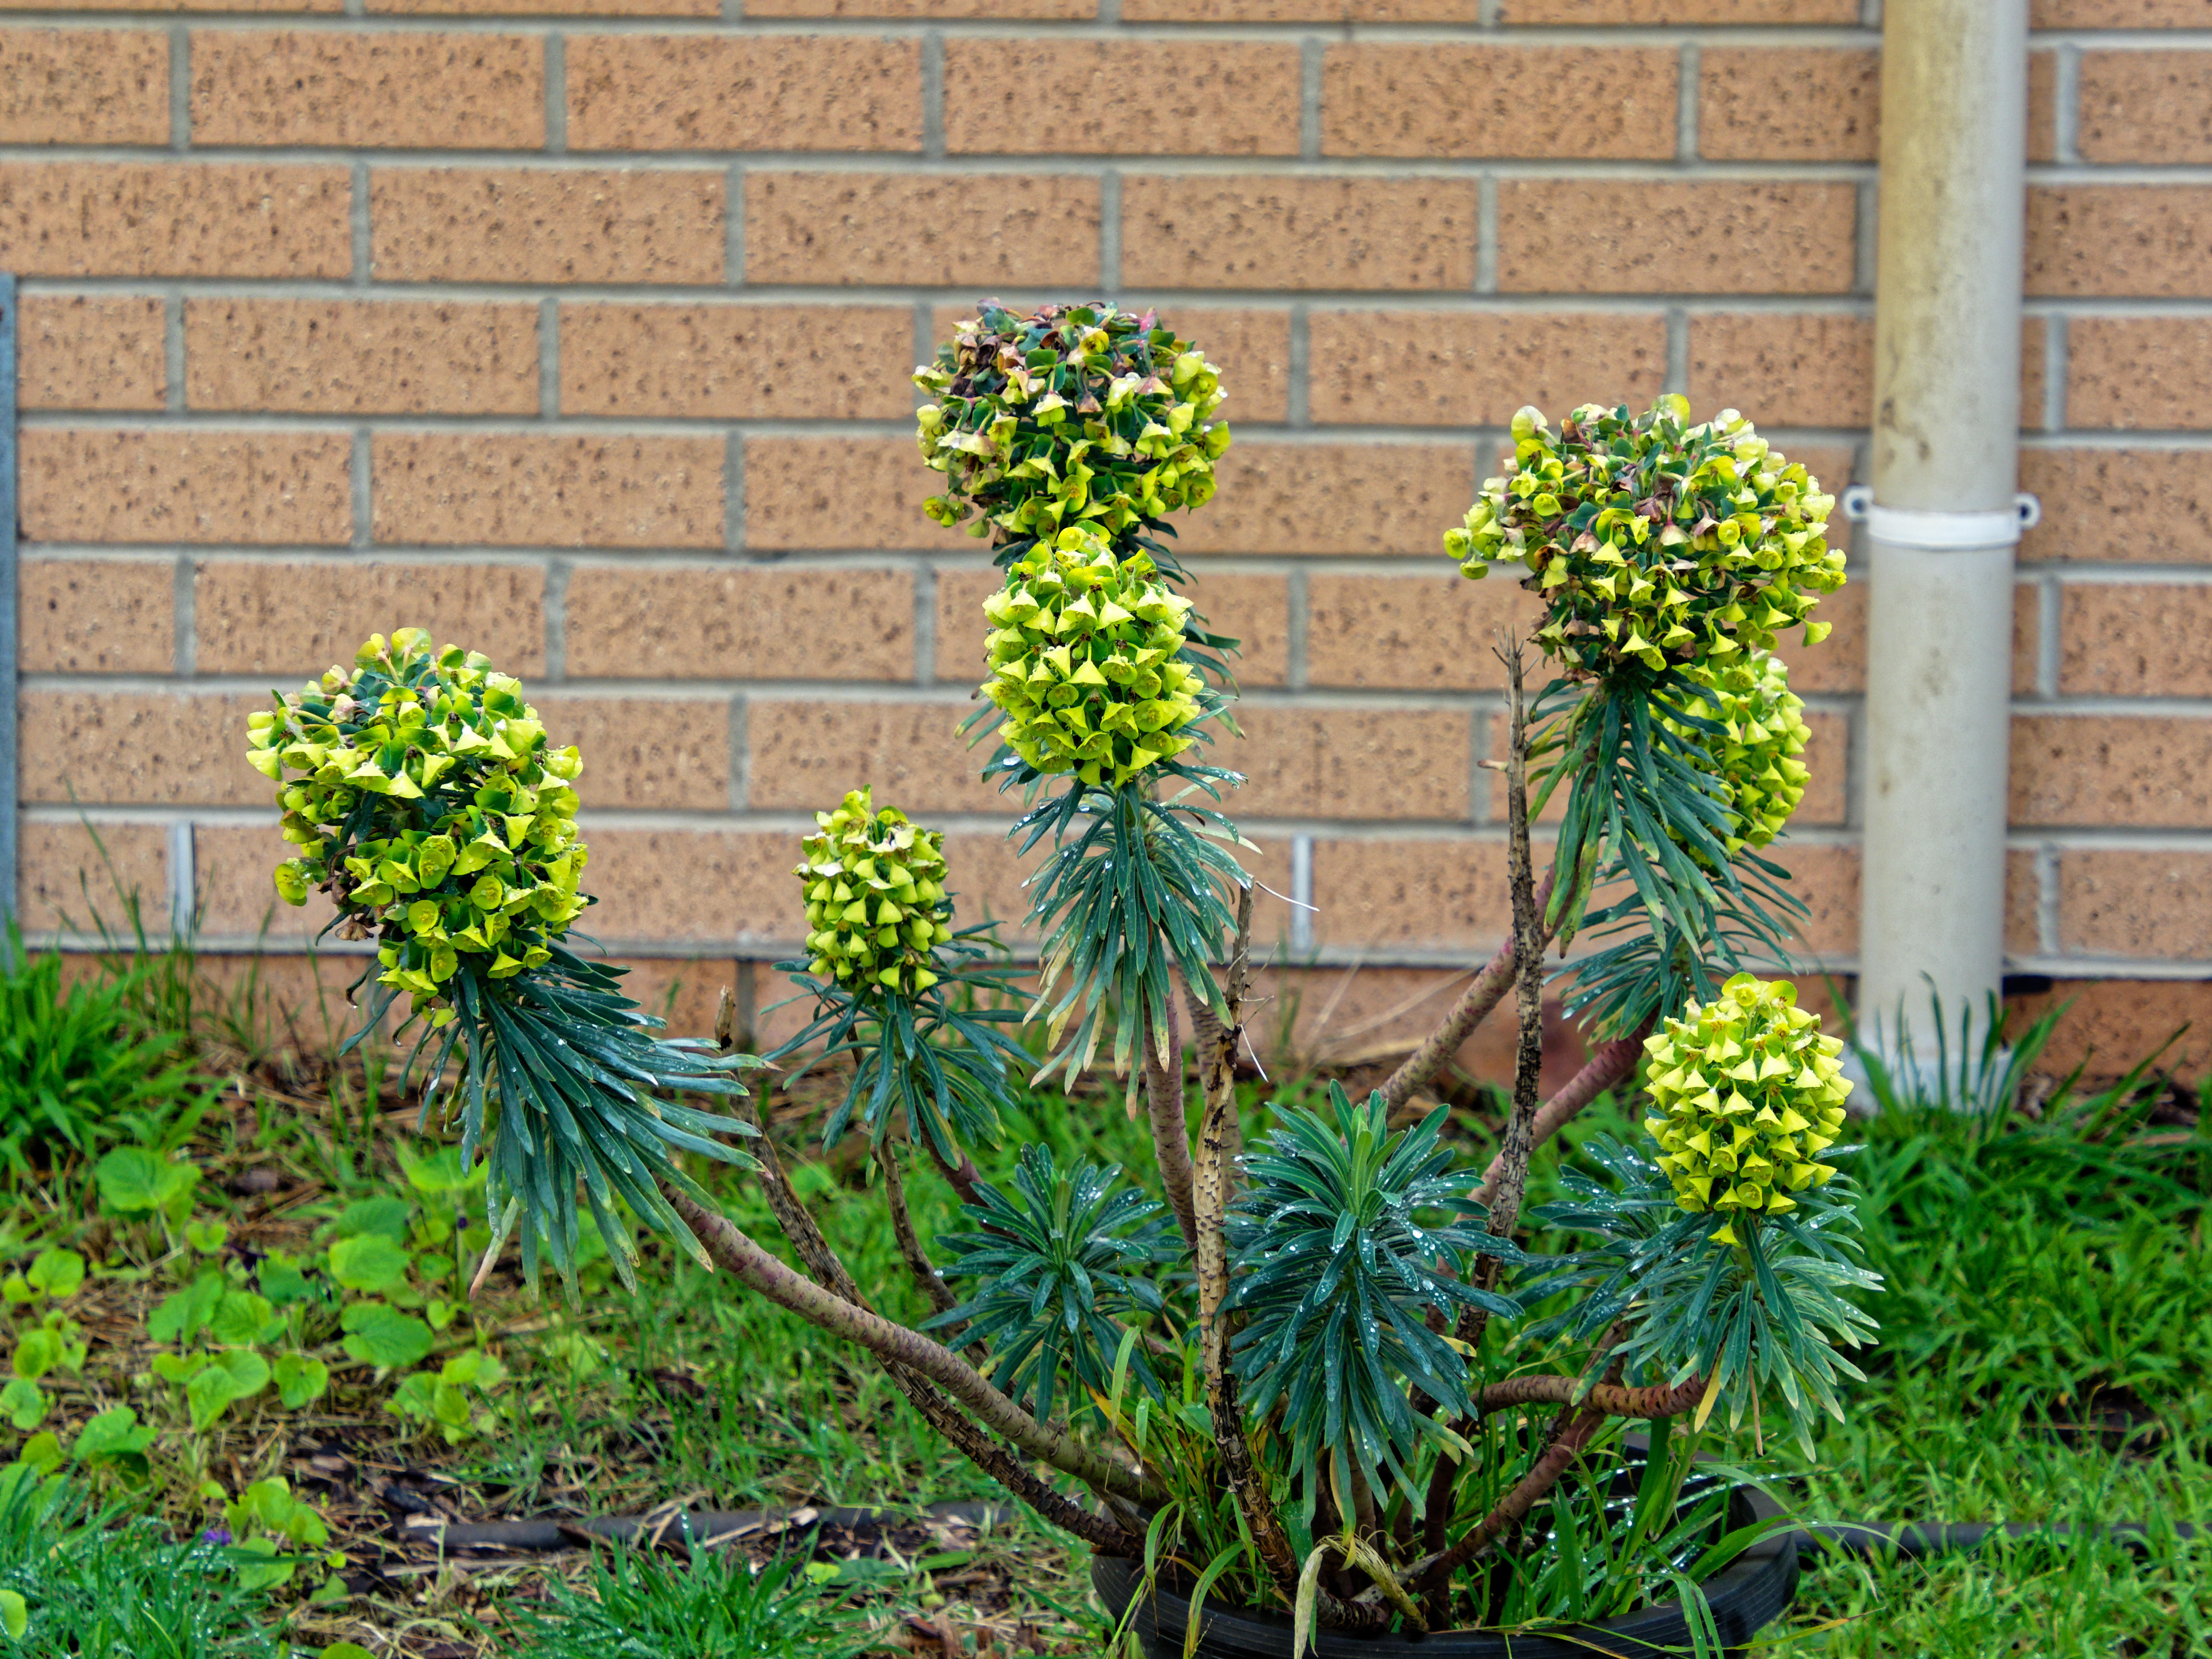 This should be Euphorbia.jpeg.  Is it missing?